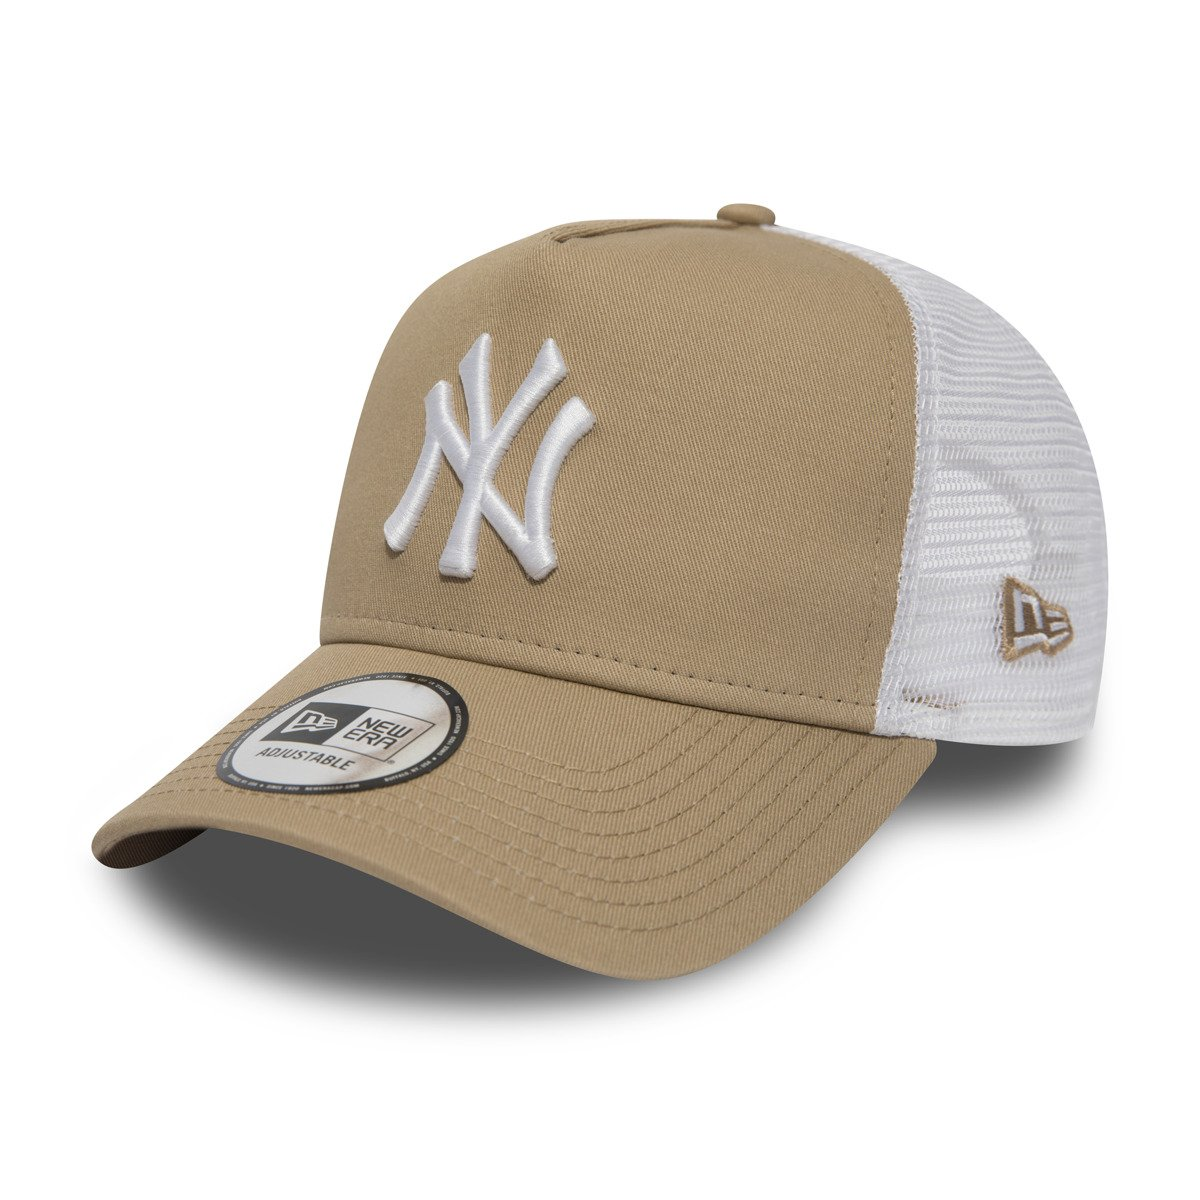 8d67246880b635 New Era A Frame MLB League Essential Trucker Cap Camel - 11871466 -  Basketo.fr